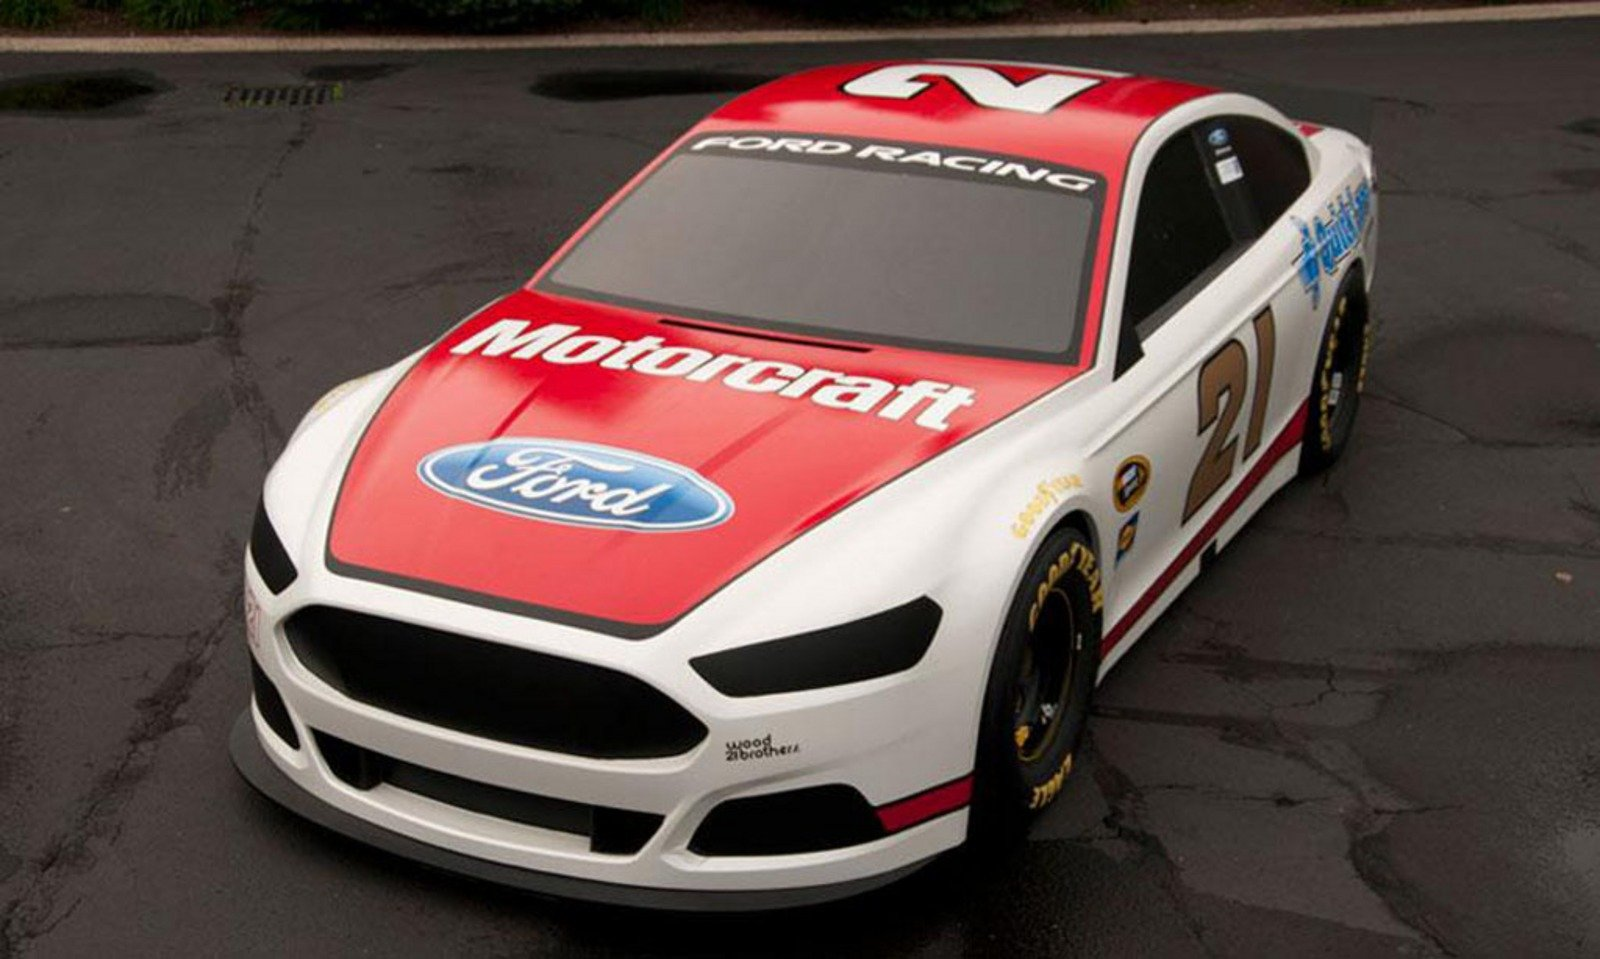 2013 Ford Fusion NASCAR Sprint Cup Review - Gallery - Top Speed